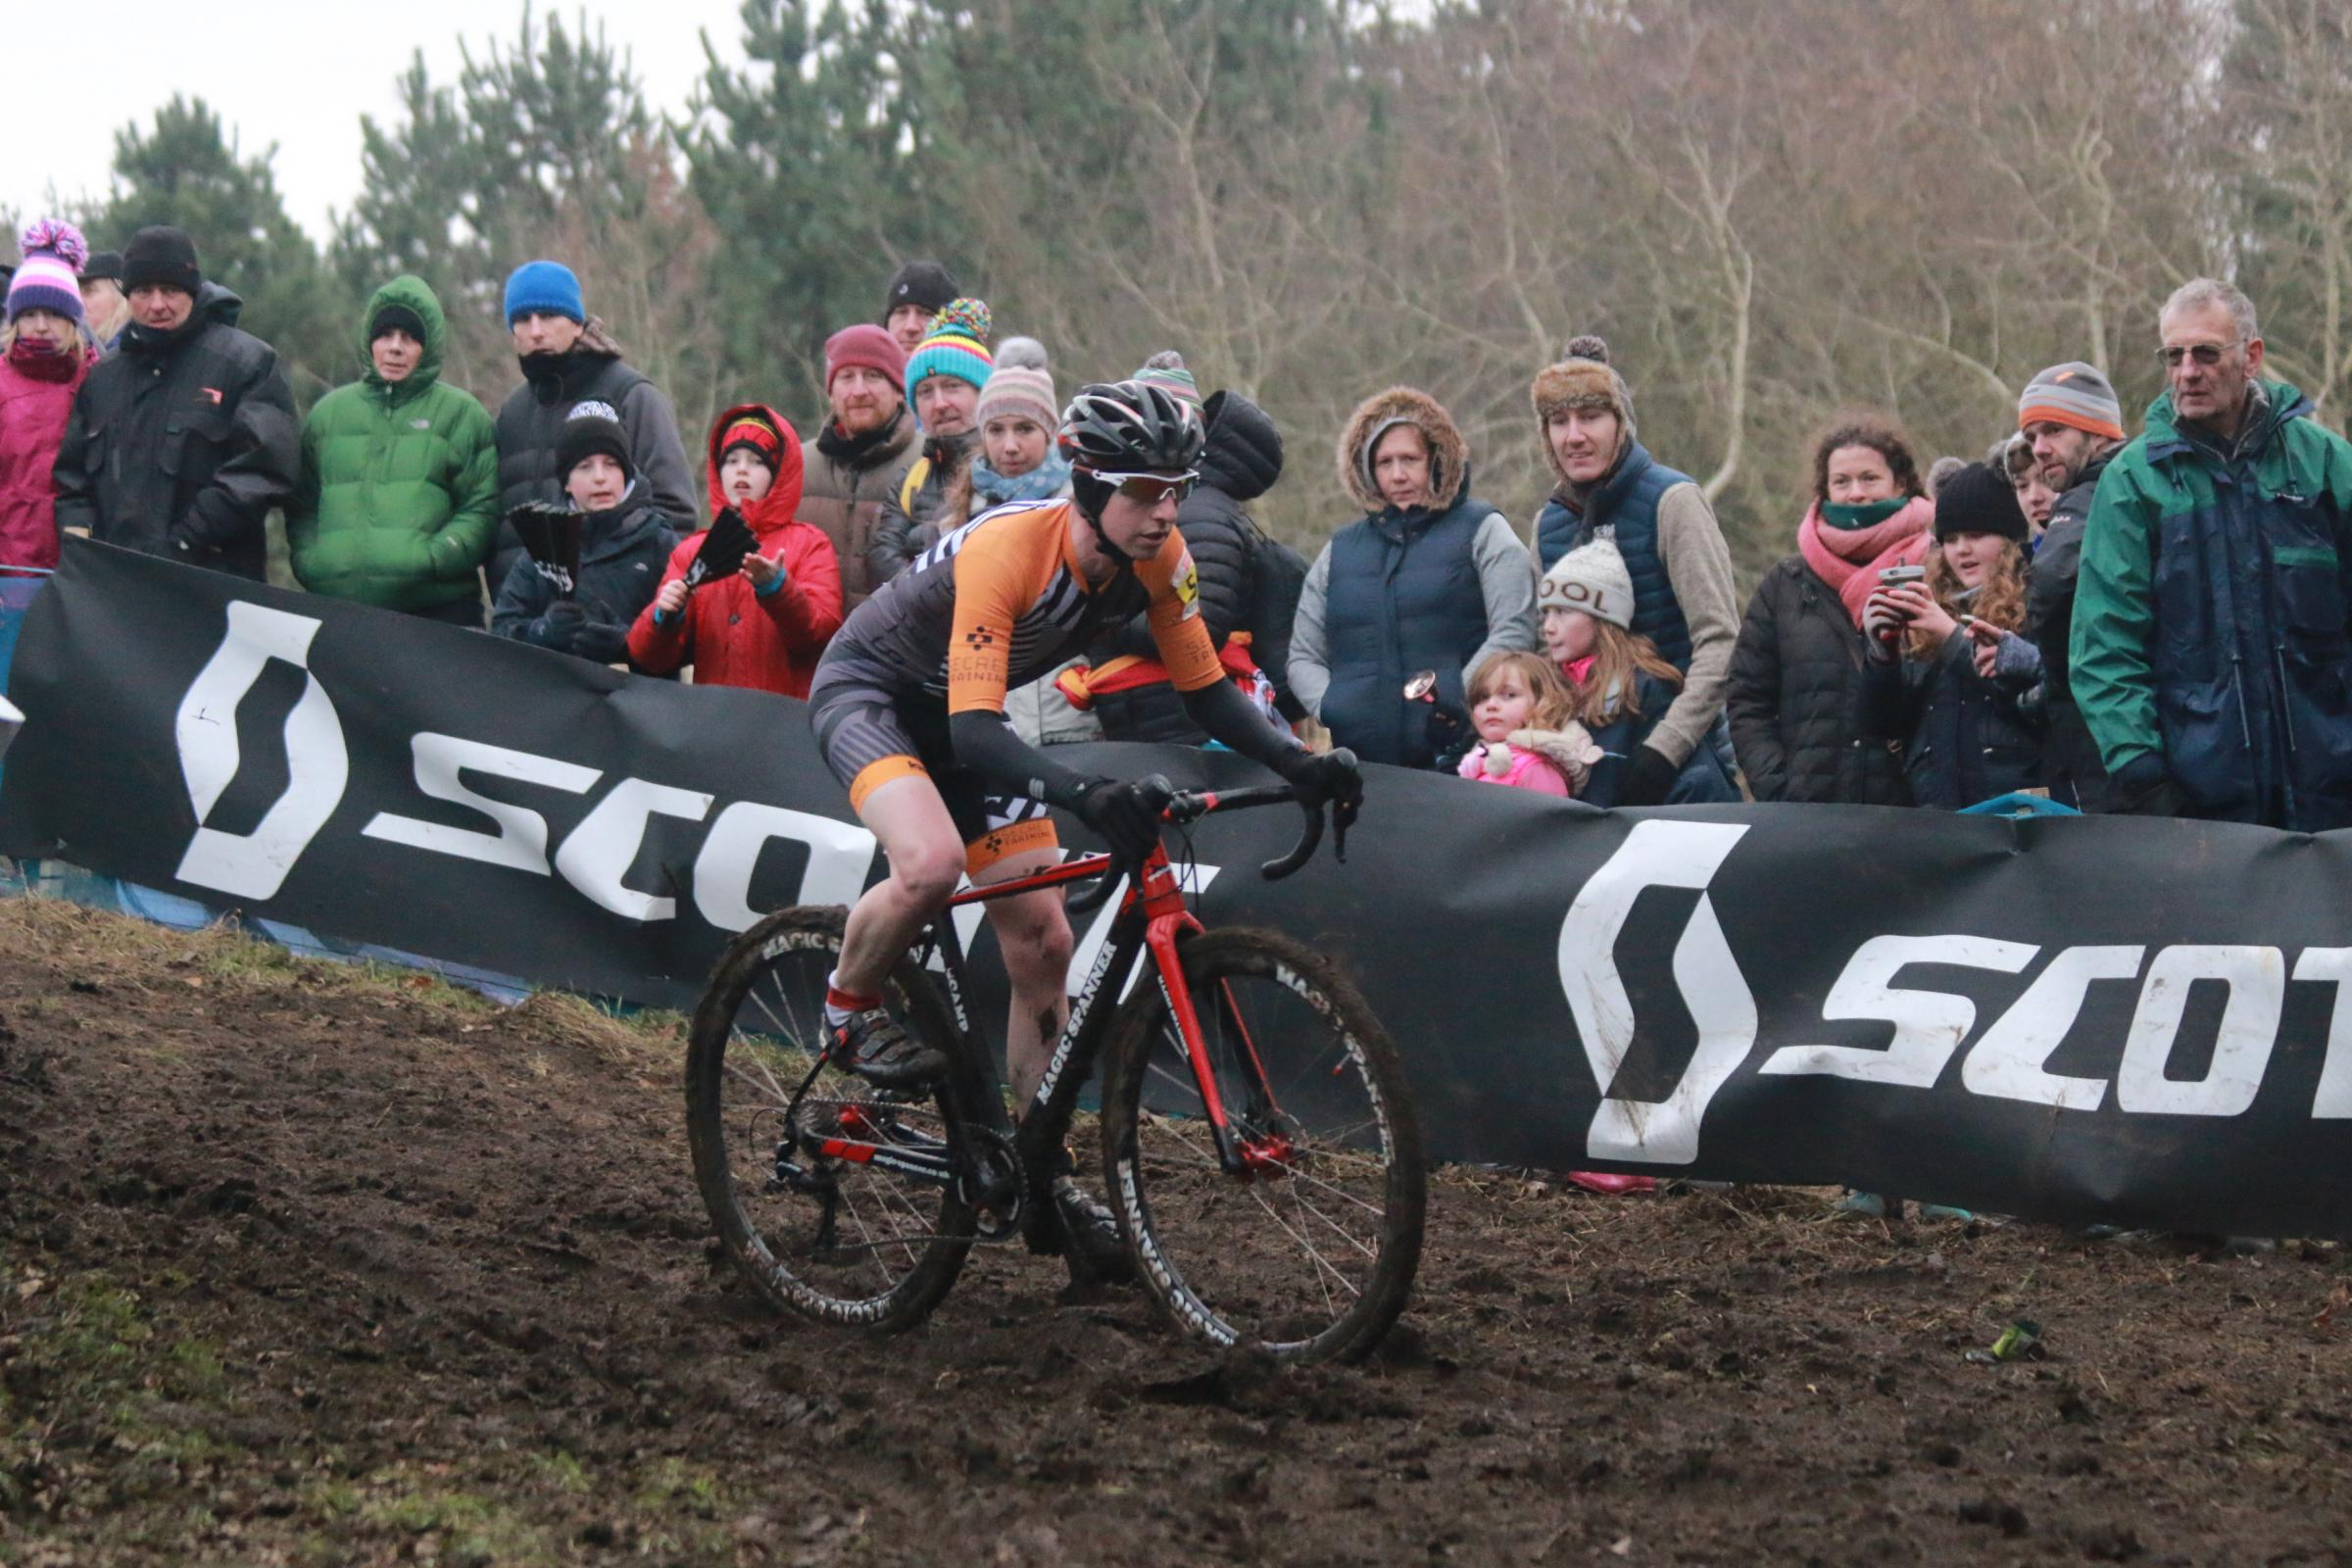 A rider tackles a downhill descent at the British Cyclo-cross championships at Hetton Lyons Country Park. Picture: MATT WESTCOTT